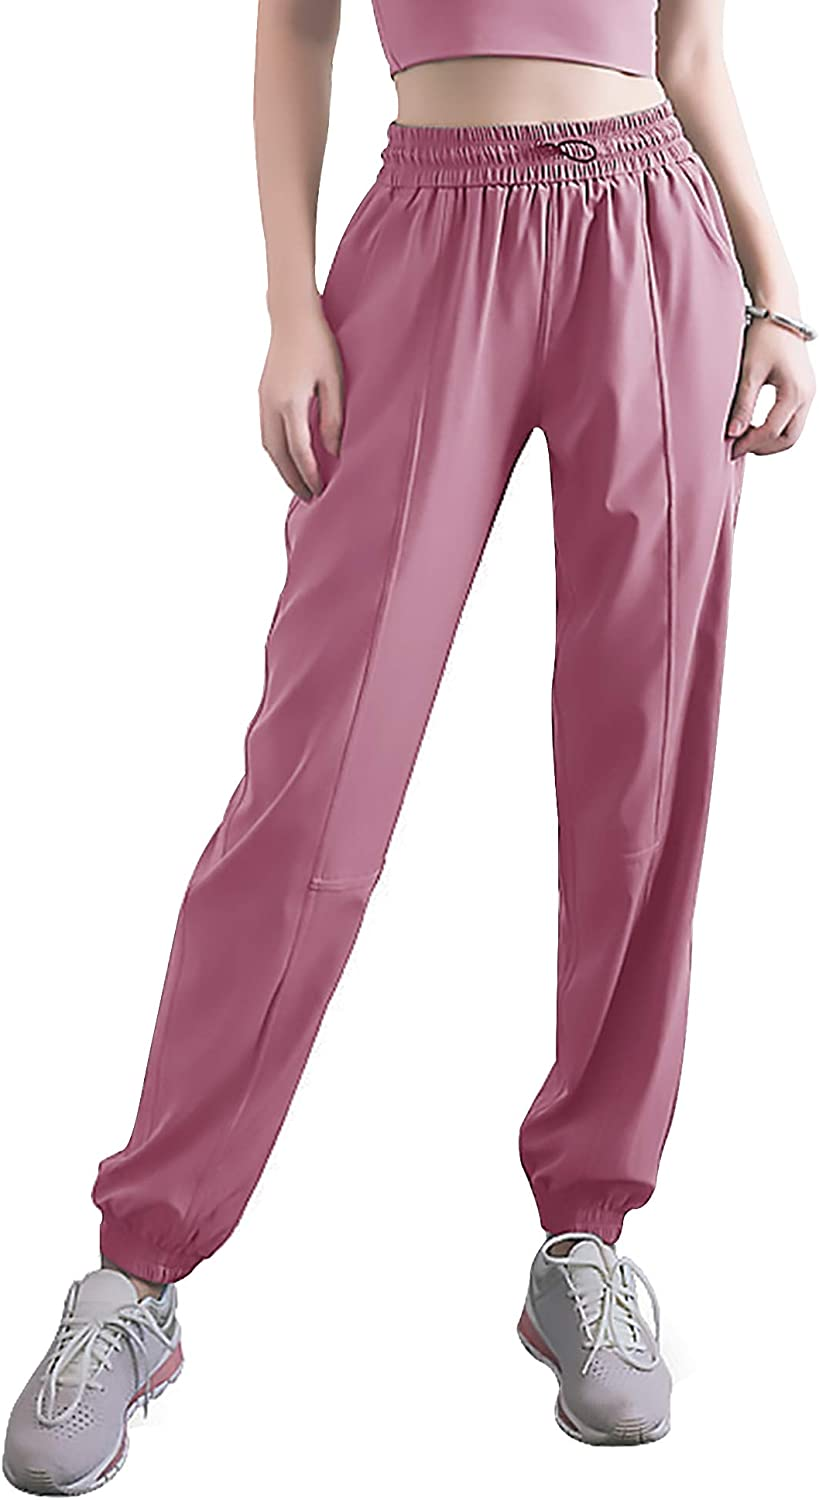 Womens Joggers with Pockets Drawstring Sweatpants High Waist Workout Sports Athletic Sweat Pants